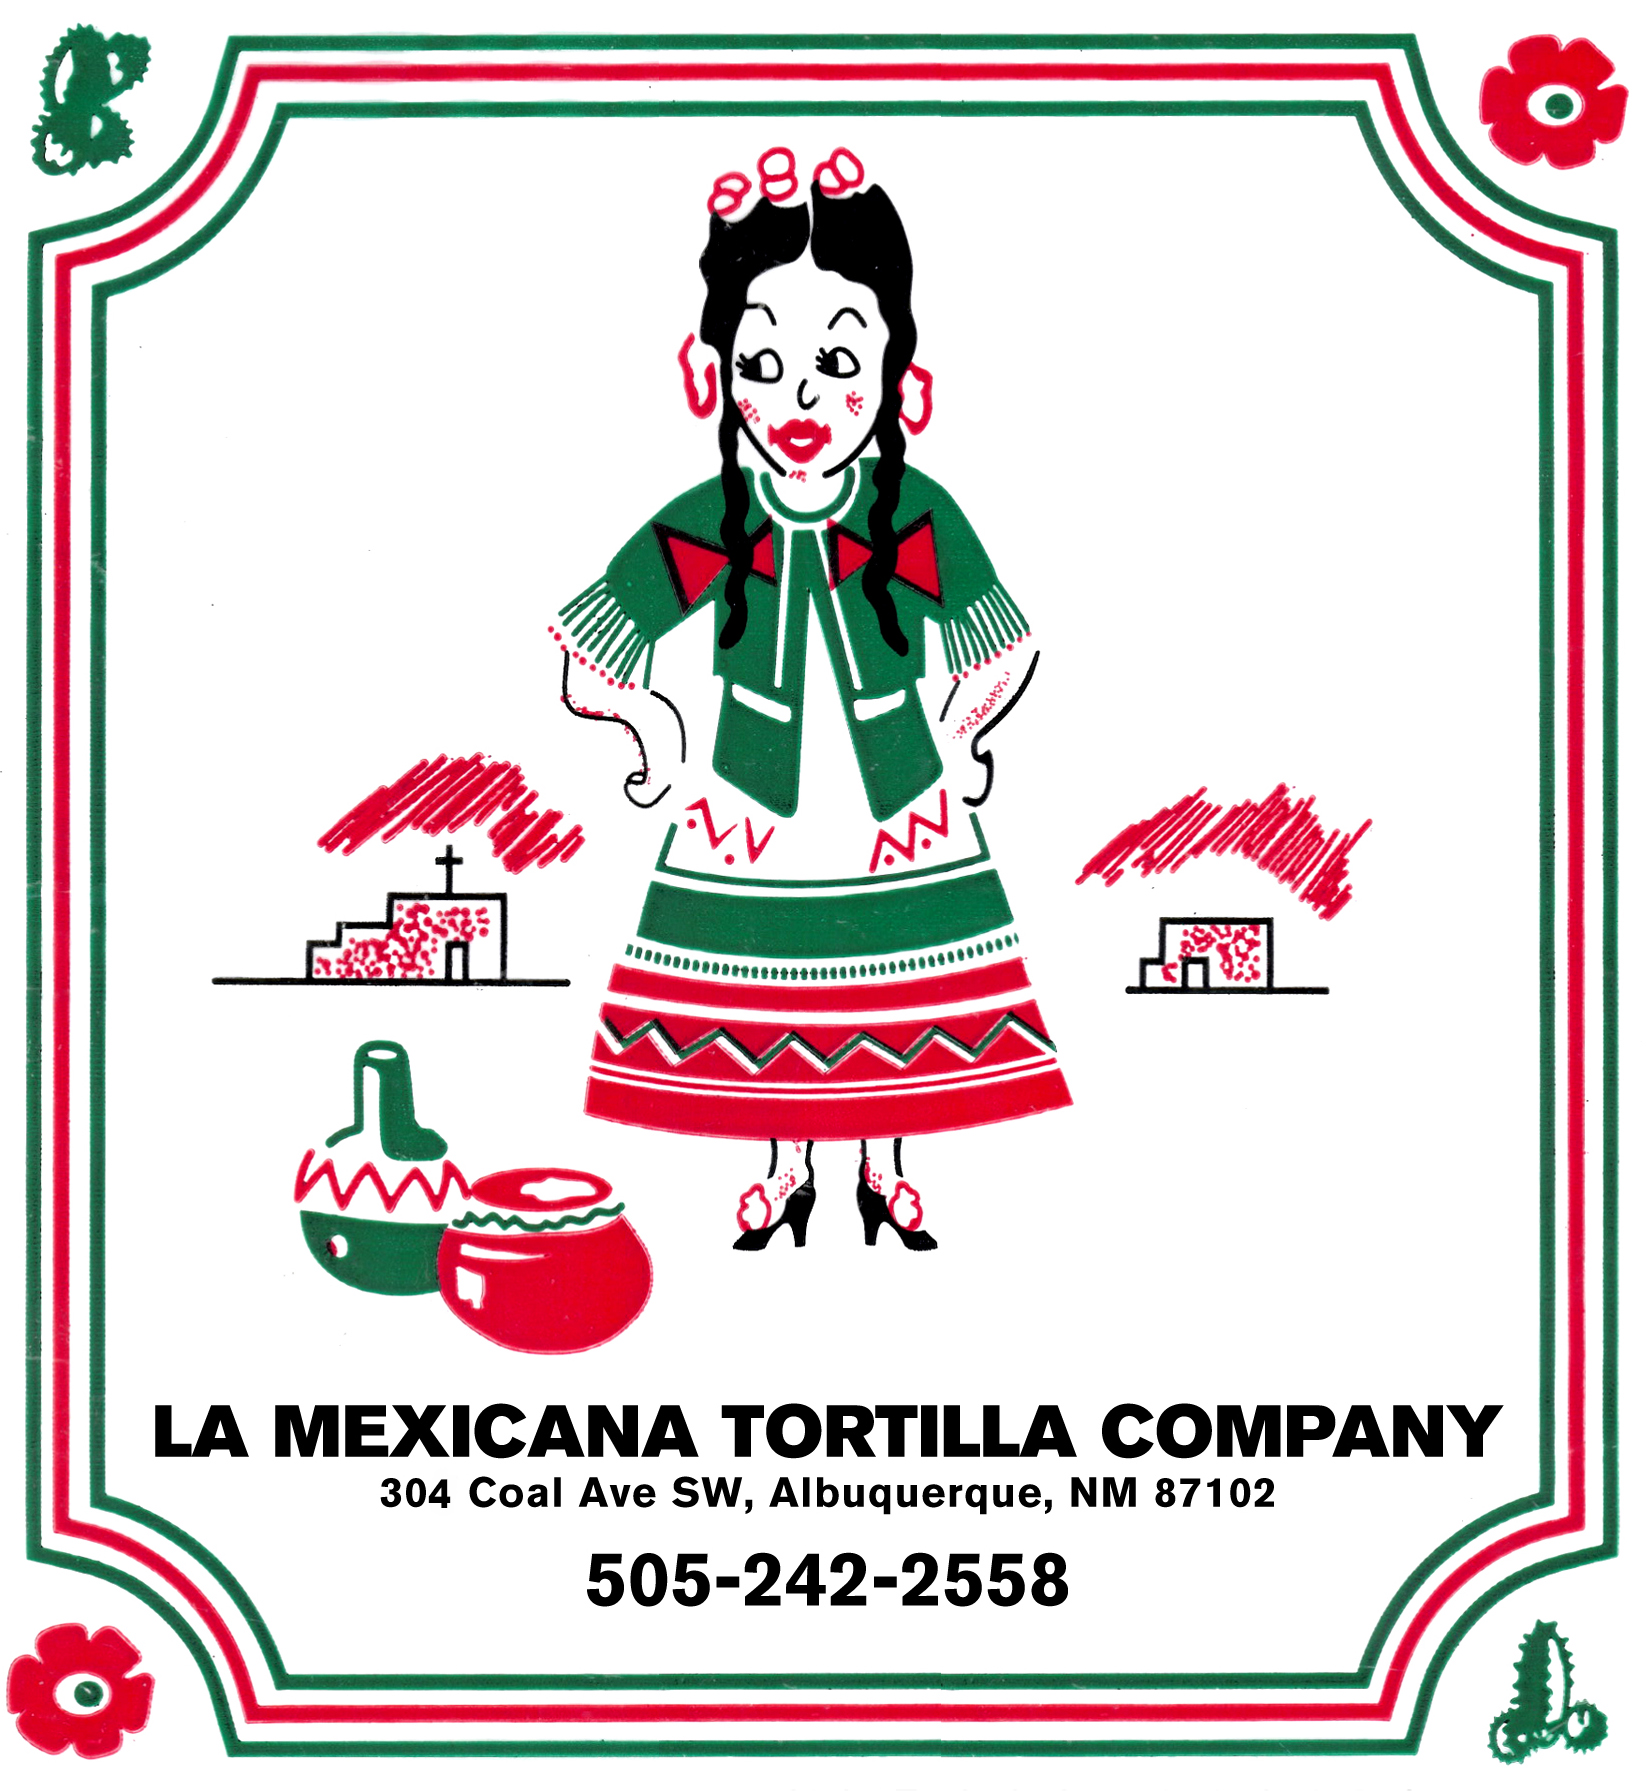 La Mexicana Tortilla Co.